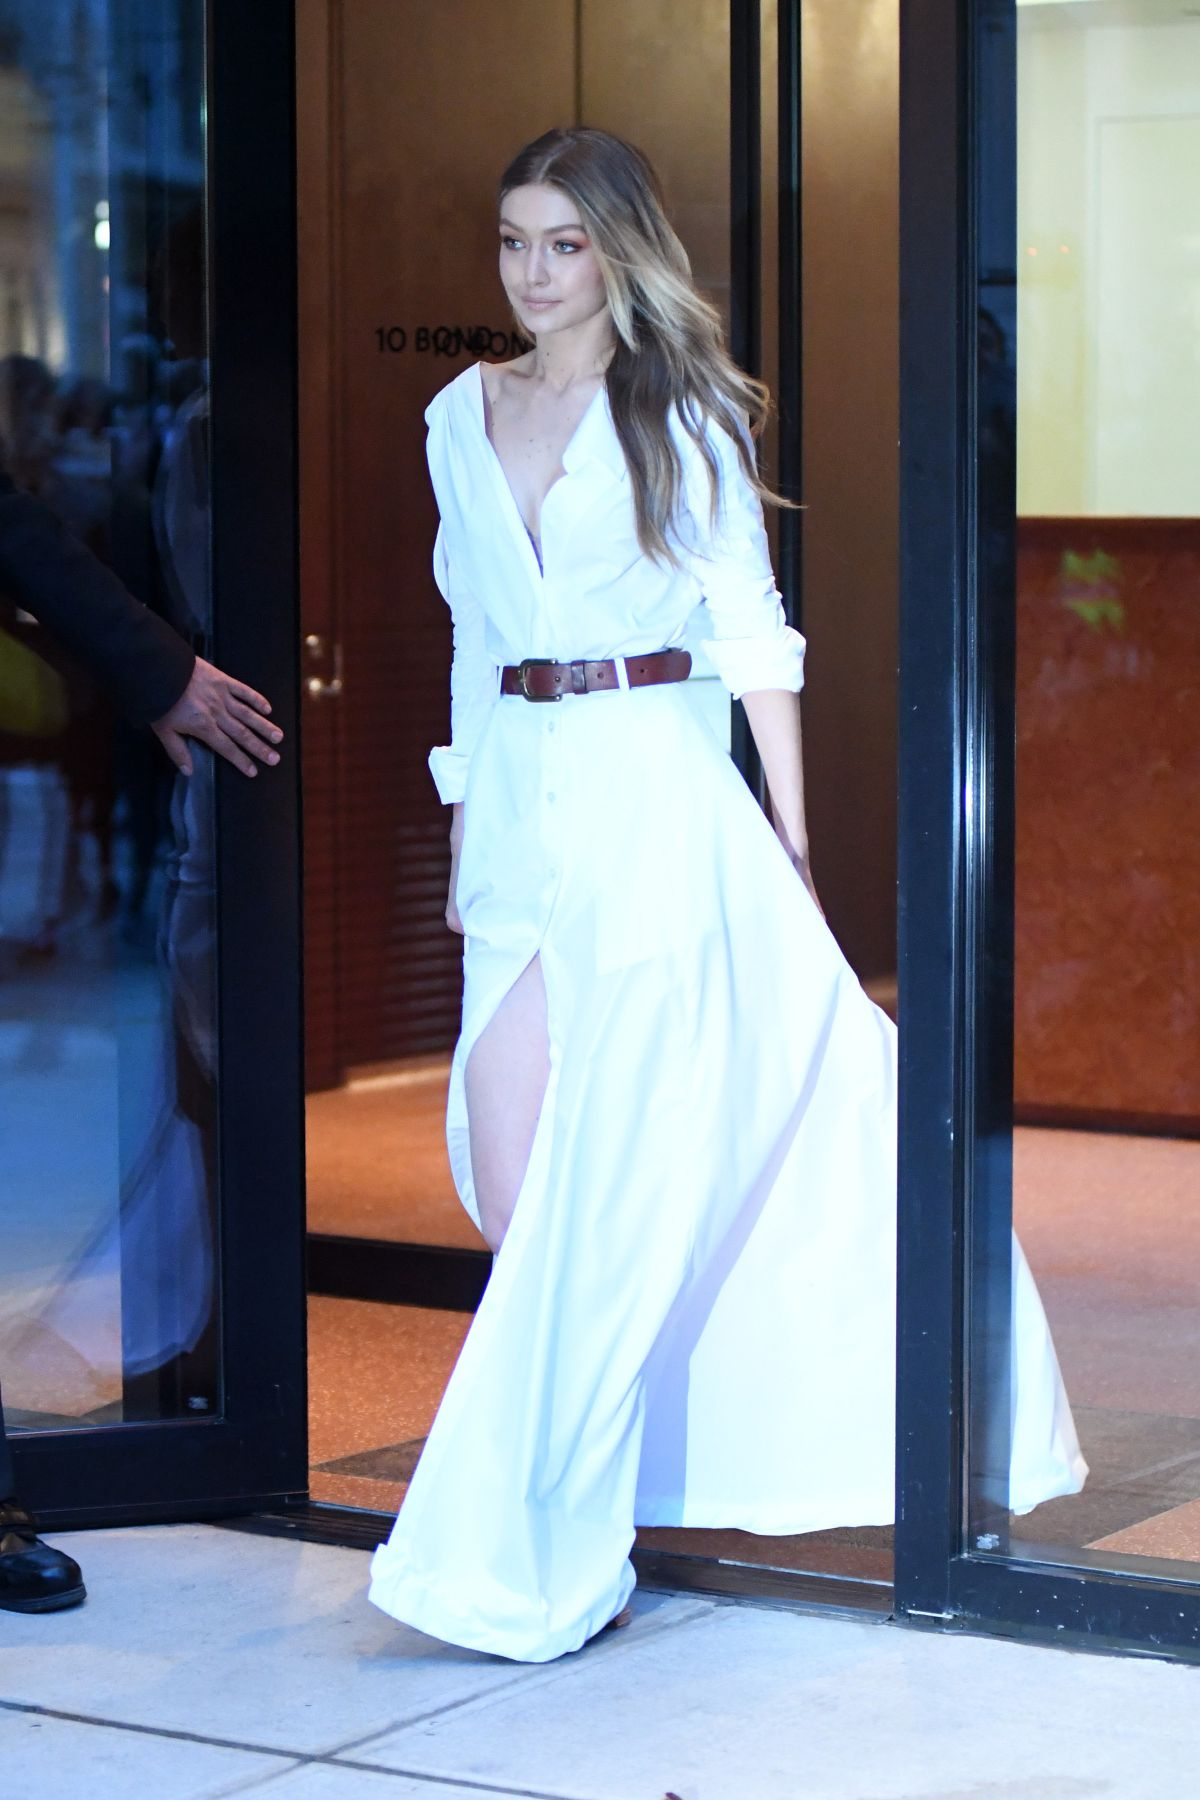 Gigi Hadid Spotted Leaving Her Apartment And Heading To Jimmy Fallon Show In Nyc